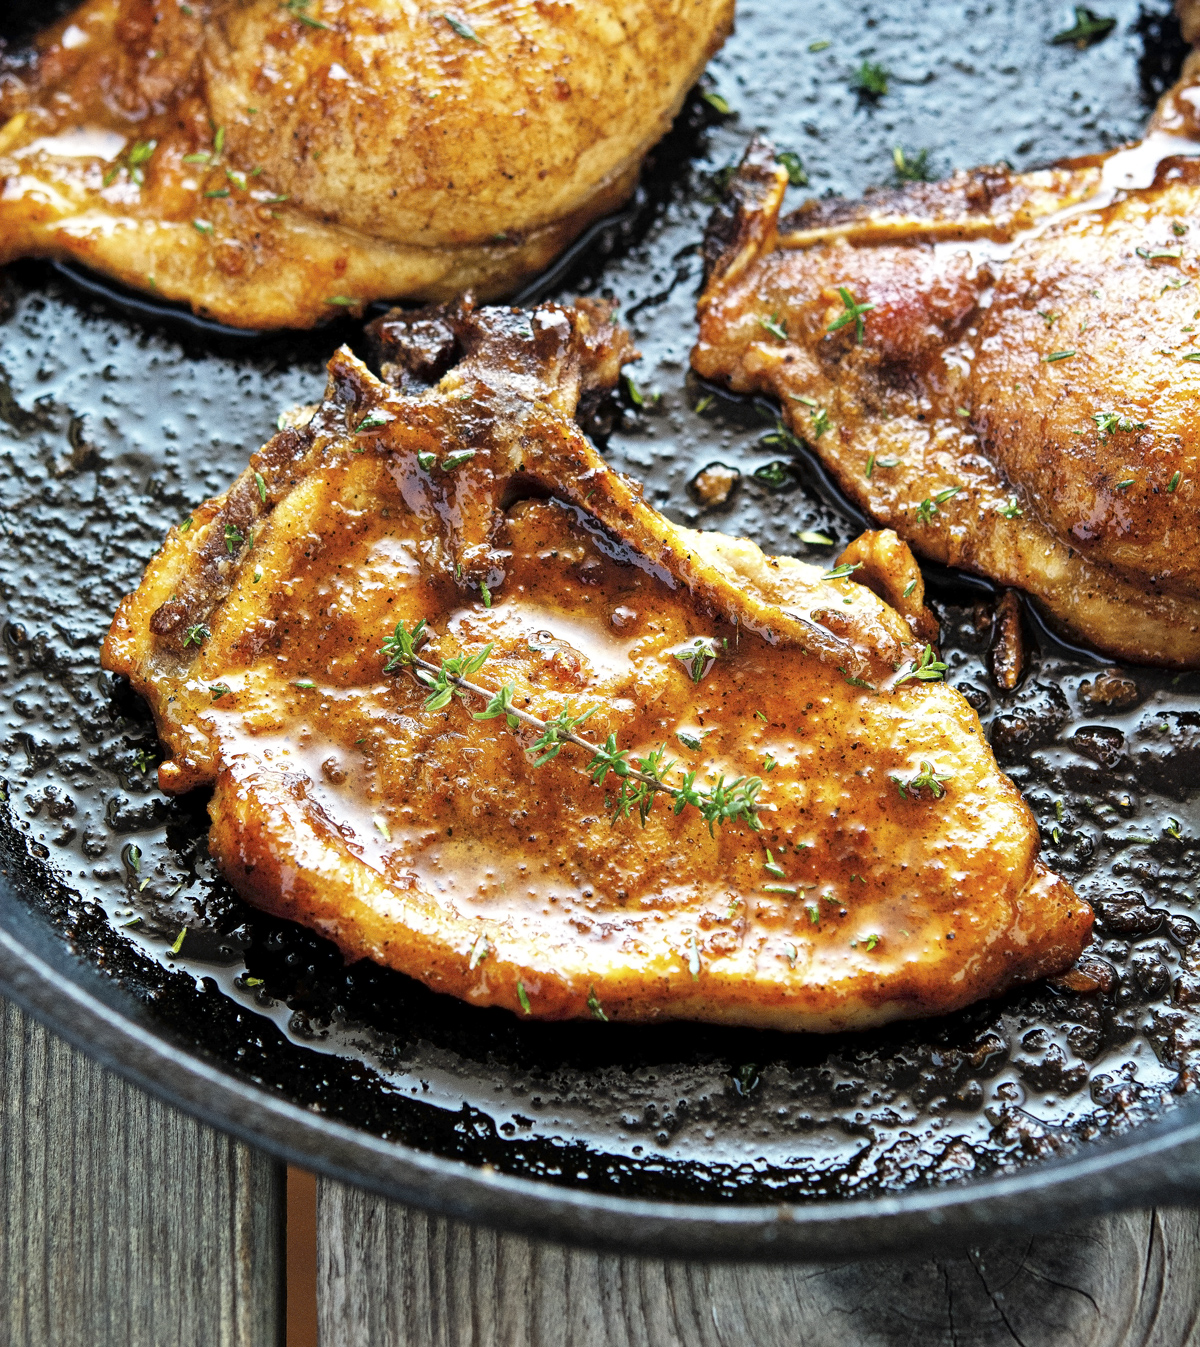 The Iron You: Apple Cider Glazed Pork Chops